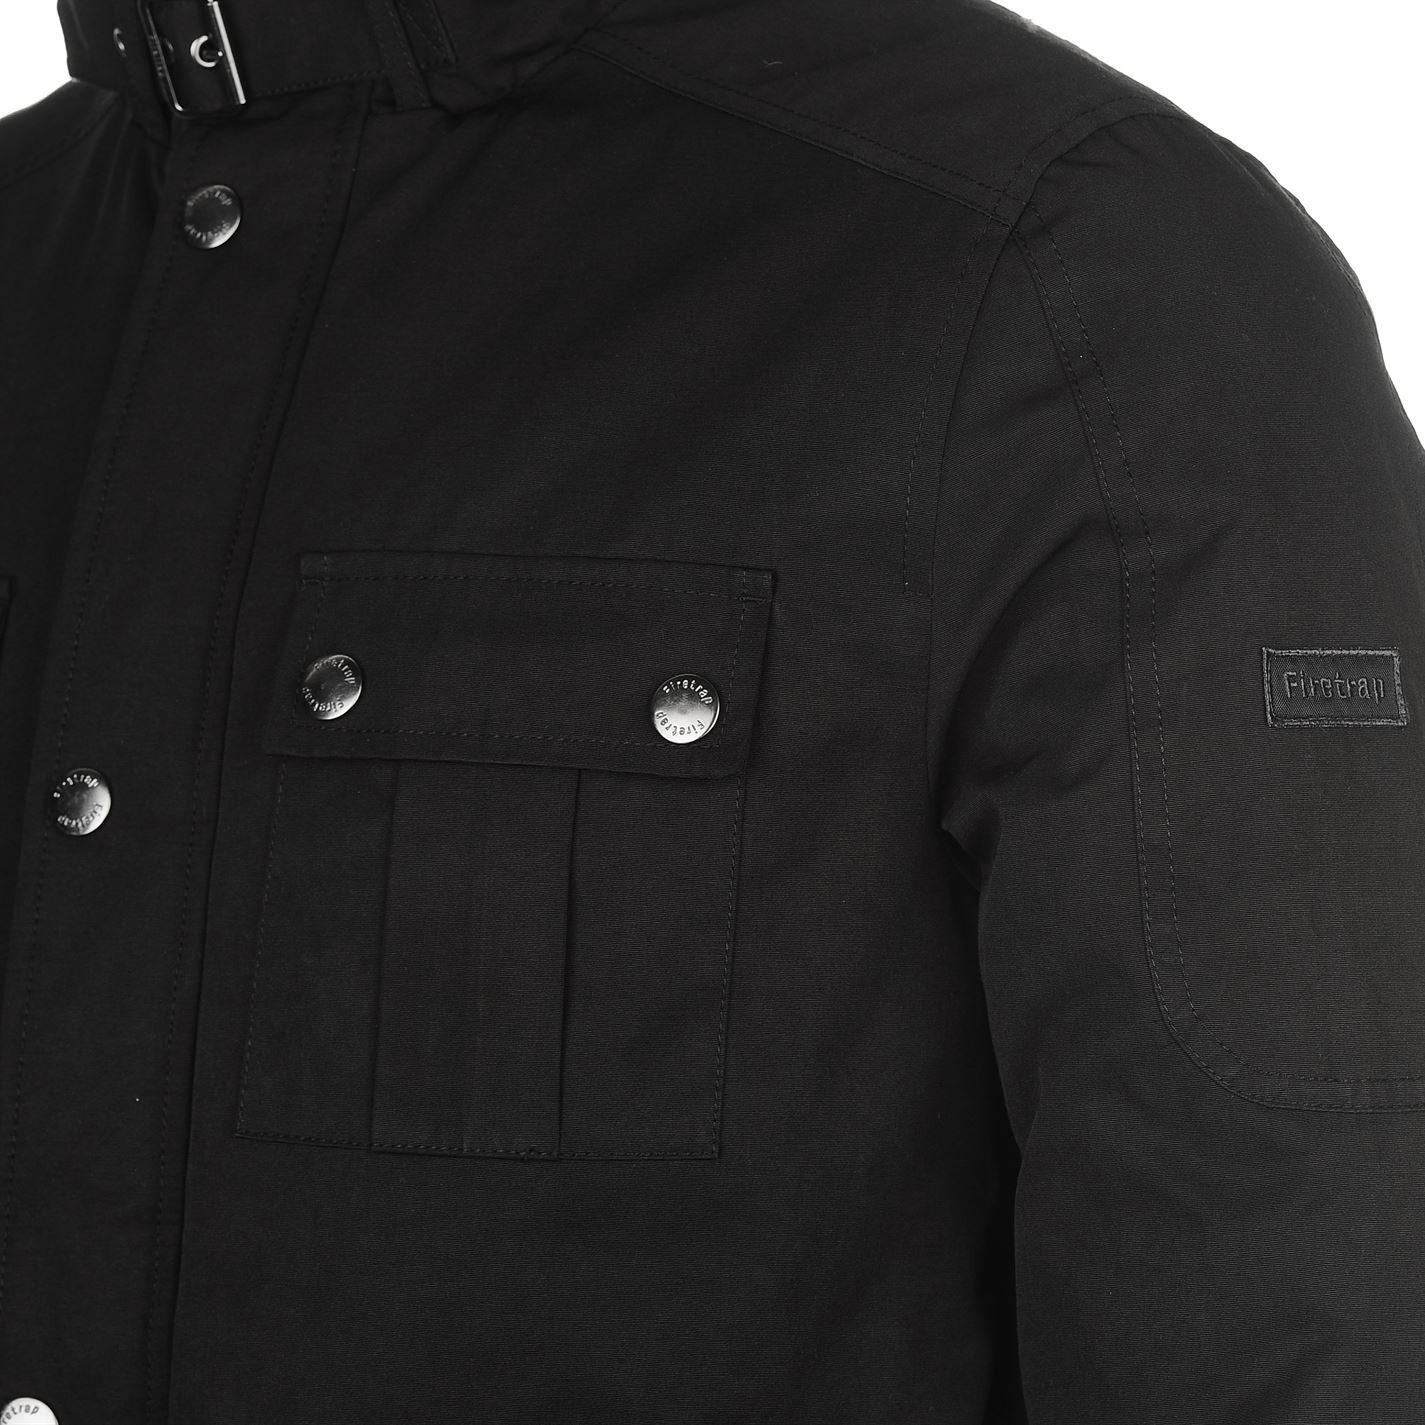 4b62b7506 Firetrap 4 Pocket Jacket Mens Black Coat Outerwear | eBay